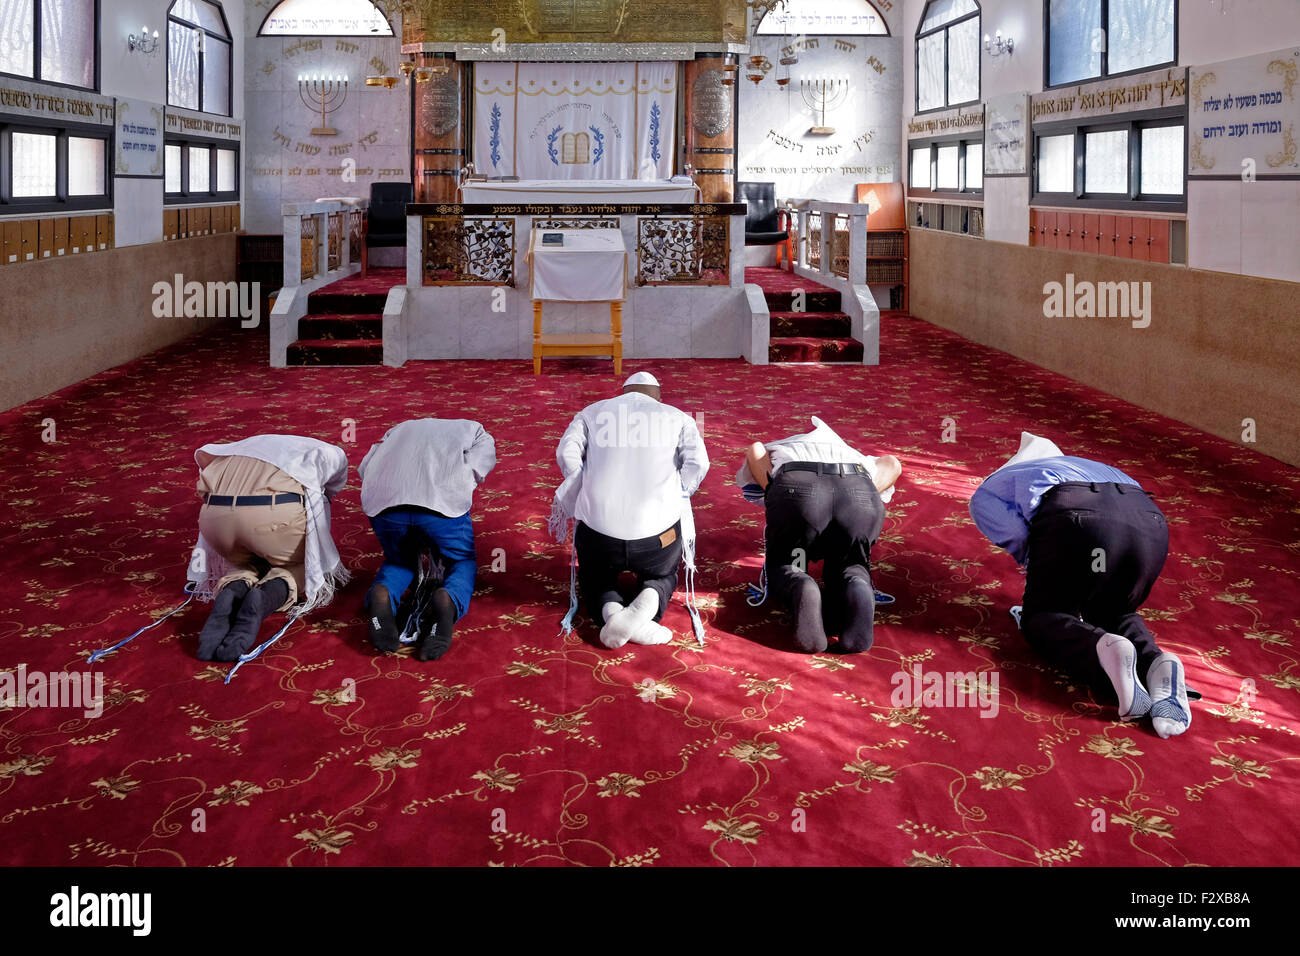 Karaite Jews bowing on the knees and prostrate during prayer in a Karaite synagogue in the city of Ramle or Ramleh Stock Photo